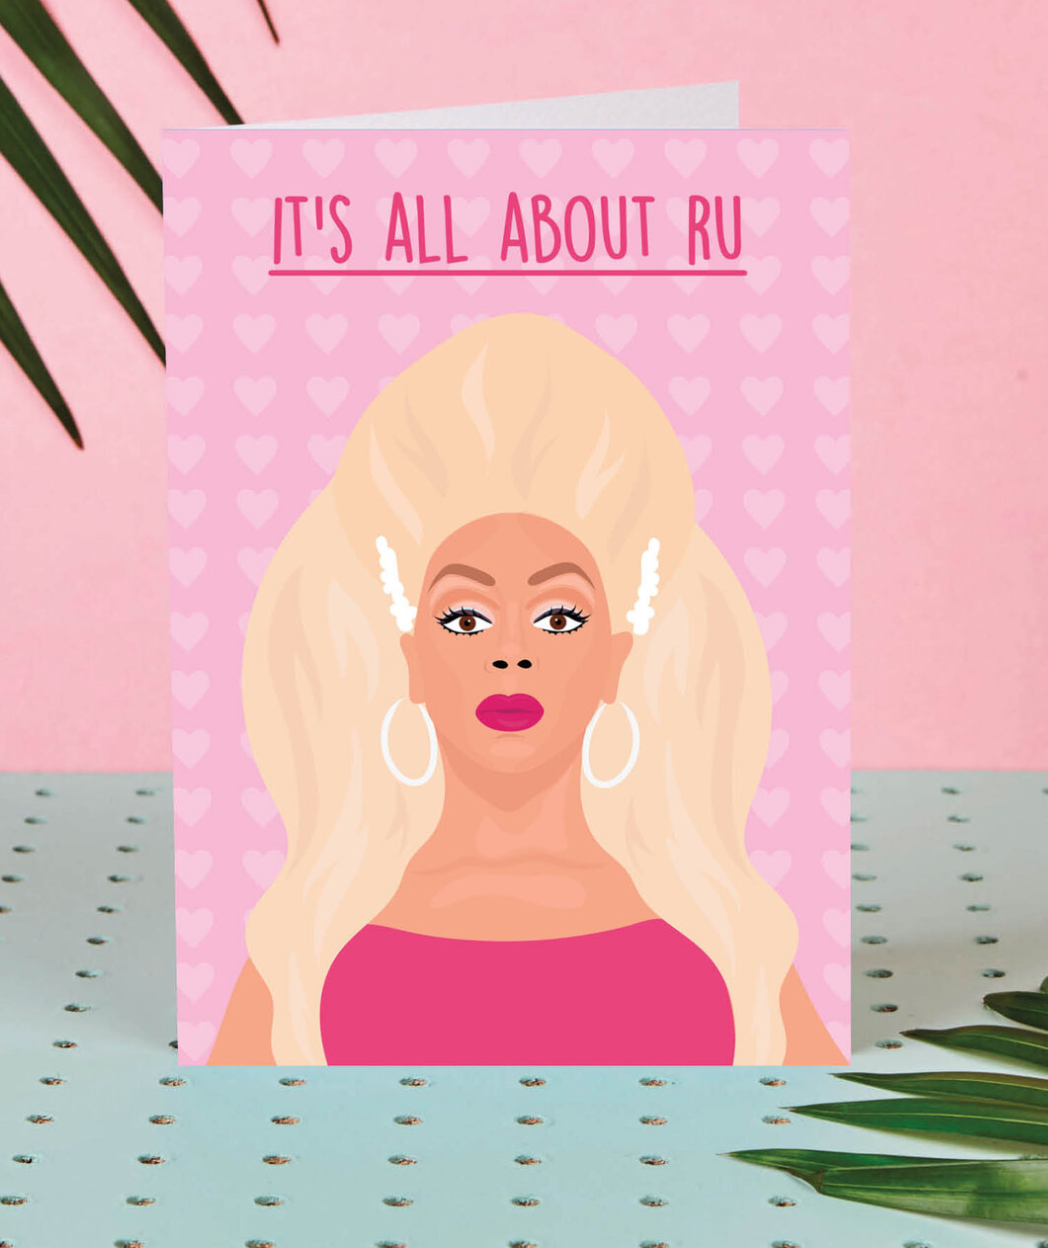 Above: Drag queen RuPaul is right up there on the celeb status as wonderfully depicted on this Rumble Cards' design.